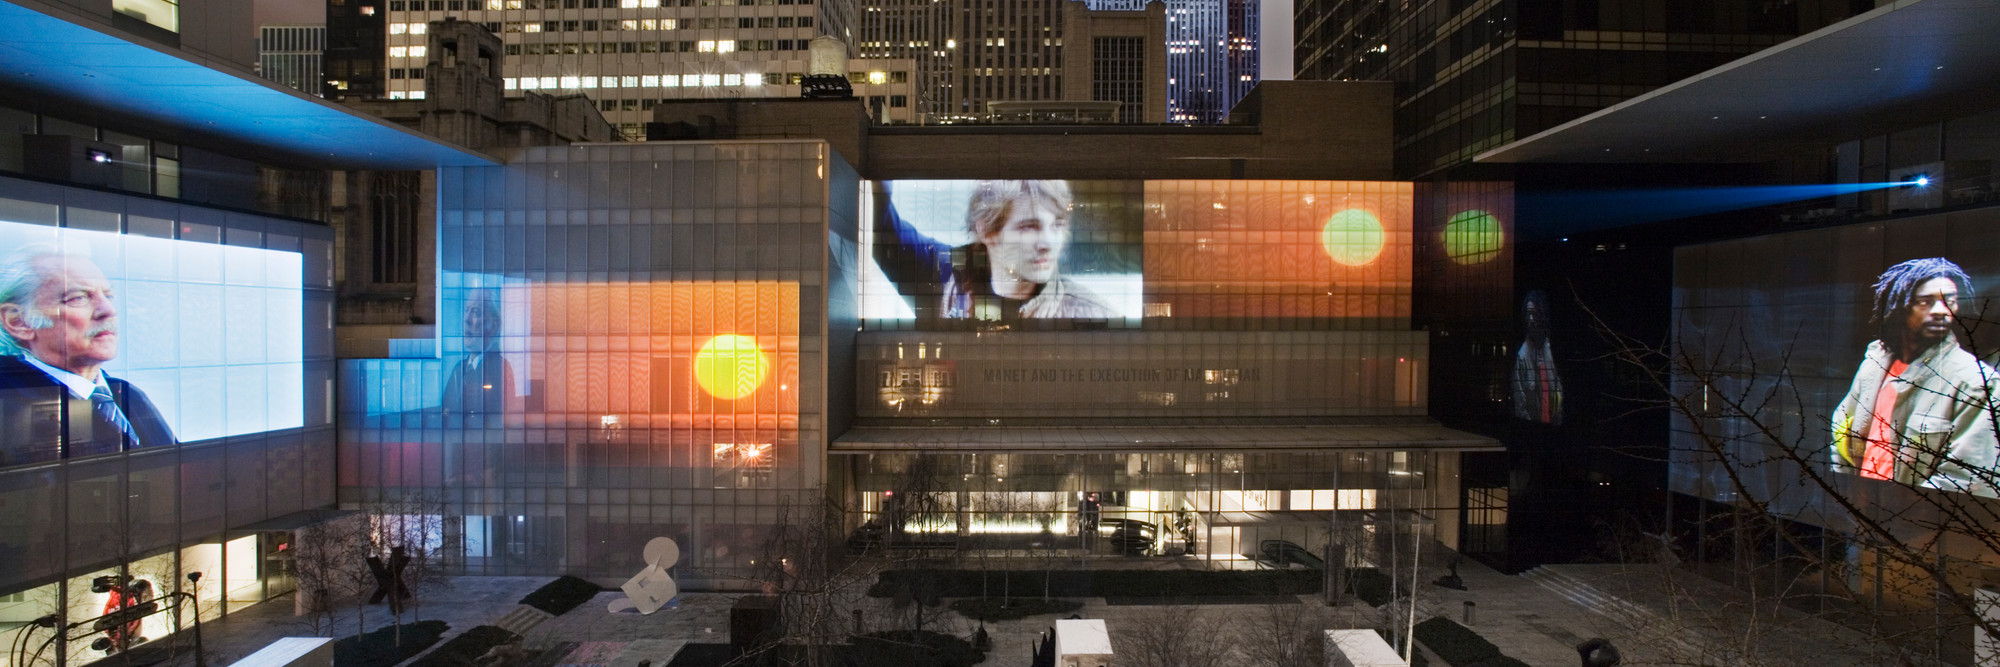 Doug Aitken. <em>sleepwalkers.</em> 2007. Six-channel video (color, sound). The Dunn Bequest. © 2016 Doug Aitken. Photo: Fred Charles. Courtesy 303 Gallery, New York